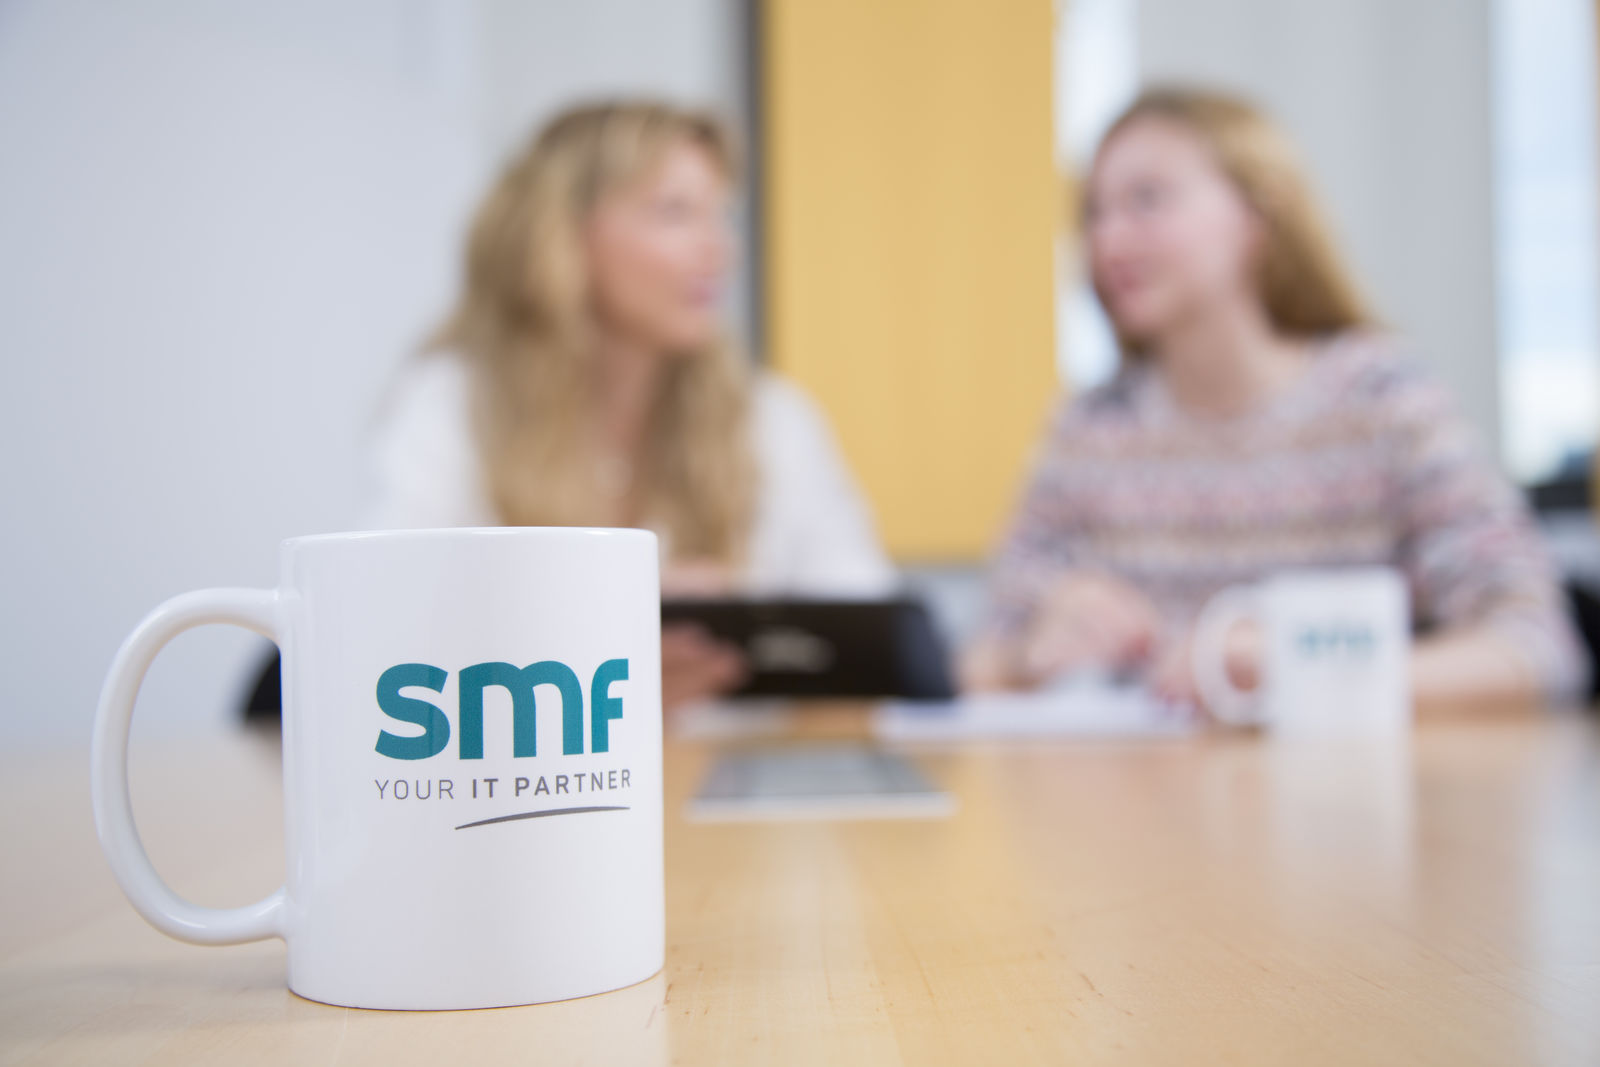 IT Projektmanager (W/M/D) - Job Dortmund - Ihre Karriere in der IT-Branche bei SMF